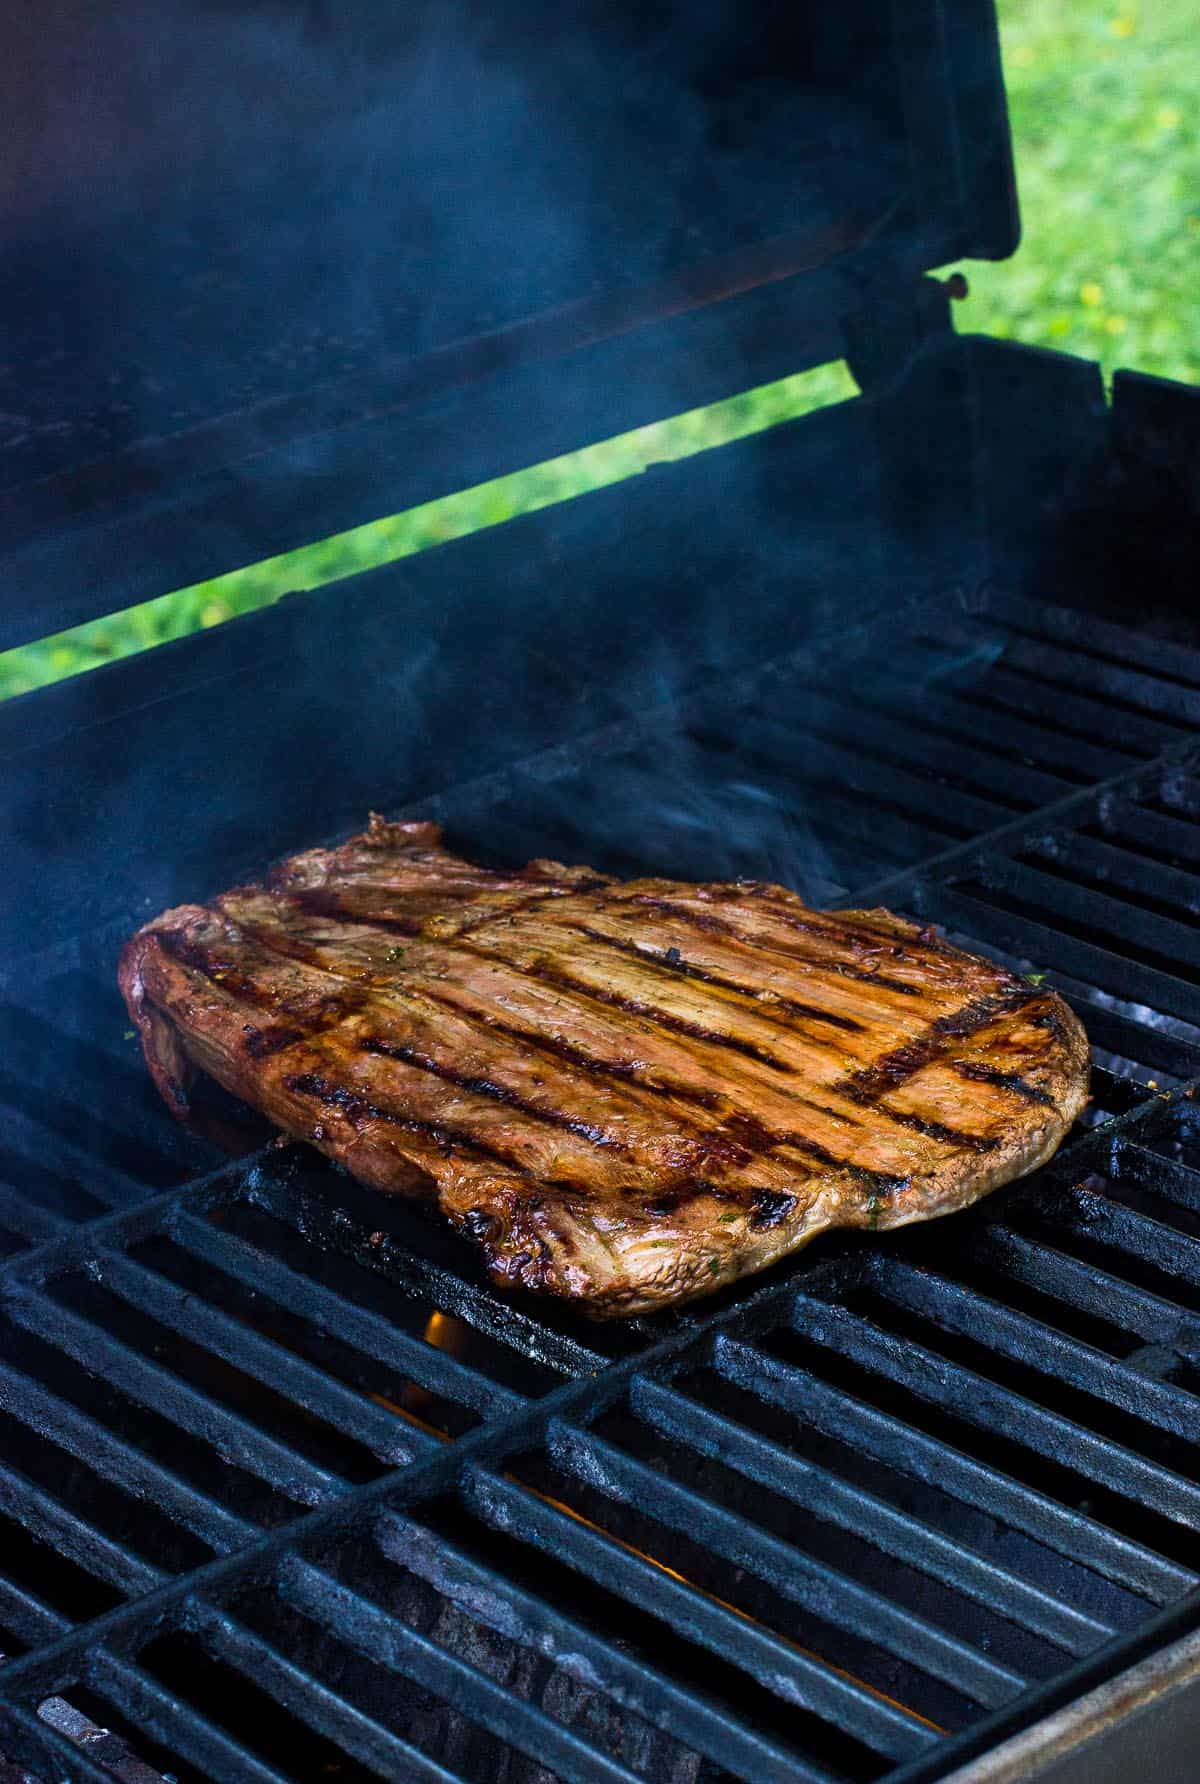 A slab of steak on the grill with smoke rising.